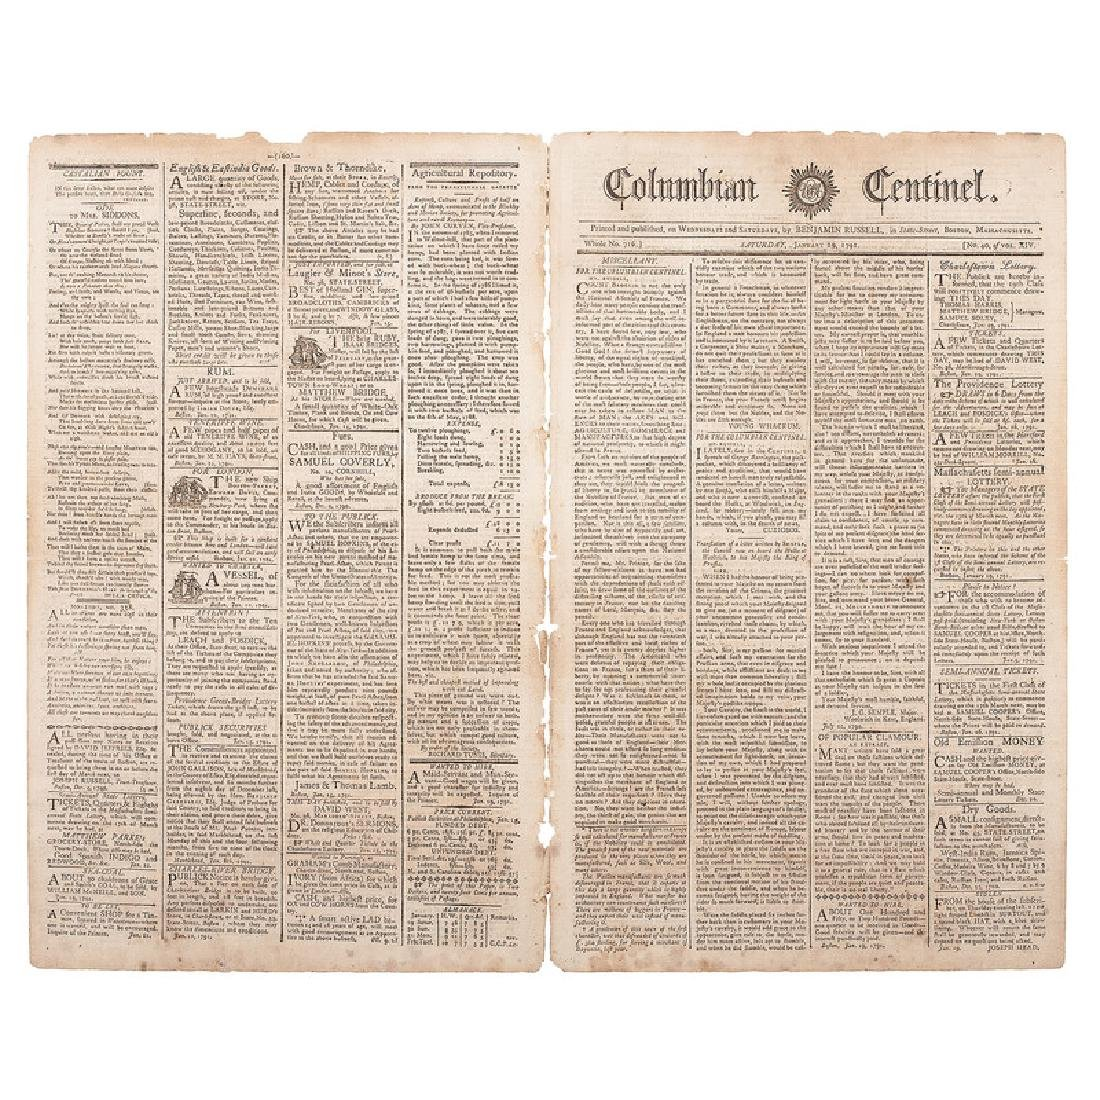 Columbian Centinel, Two Issues, 1791 & 1792, Incl.